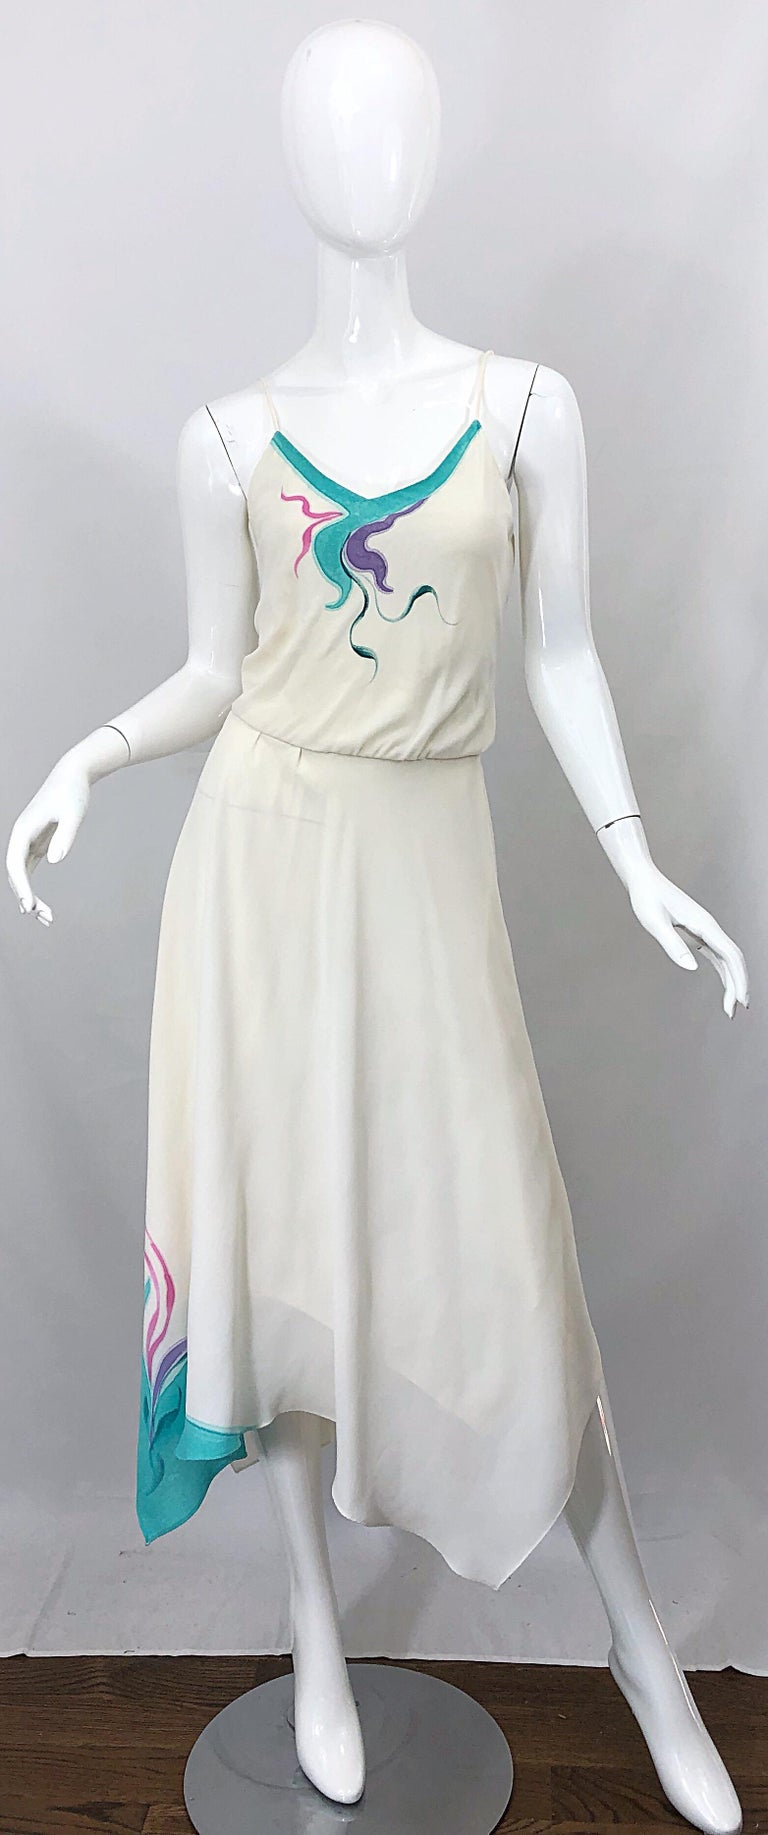 Amazing late 1970s handkerchief hem ivory, turquoise blue, pink and purple swirl print dress! Features a swirl screenprint on the bodice and on the right side of the hem of the skirt. Elastic waistband can stretch to fit an array of sizes. Great for